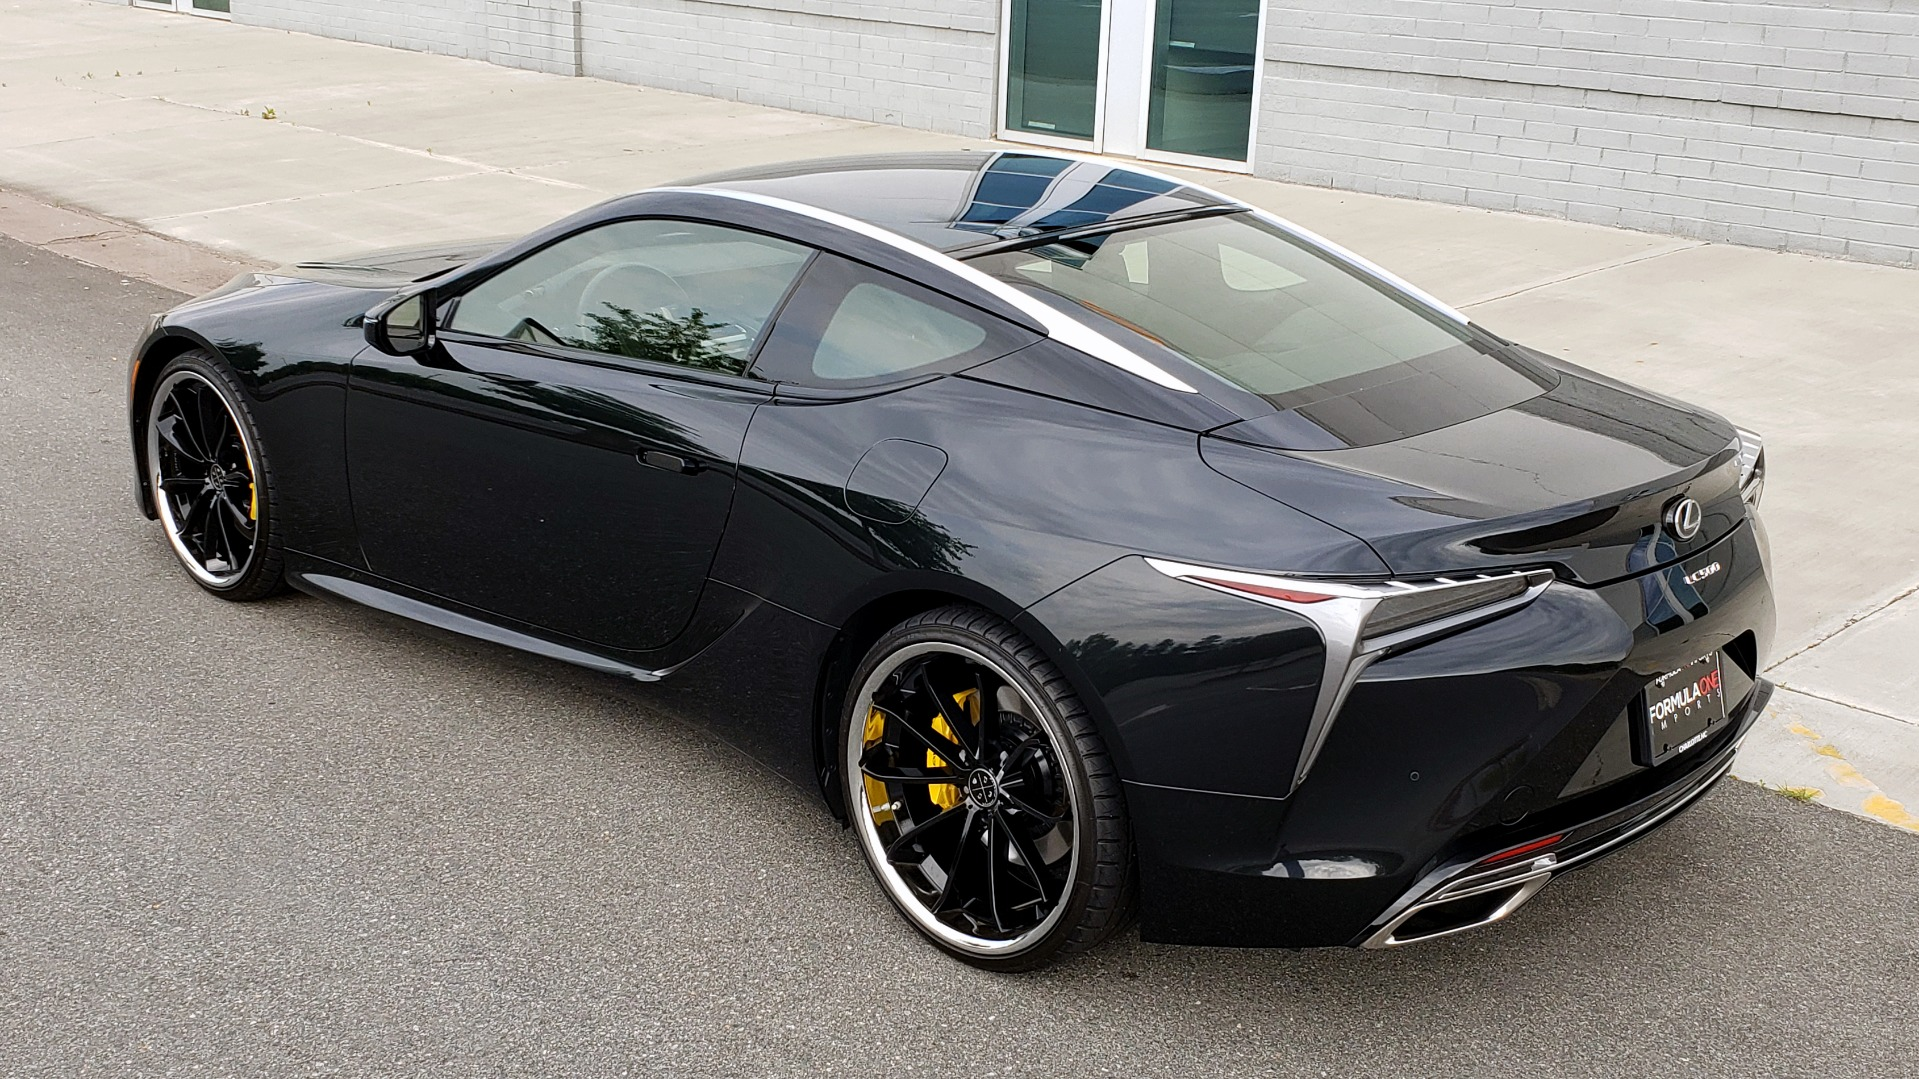 Used 2018 Lexus LC 500 COUPE / 5.0L V8 (471HP) / 10-SPD AUTO / HUD / SUNROOF / REARVIEW for sale Sold at Formula Imports in Charlotte NC 28227 12